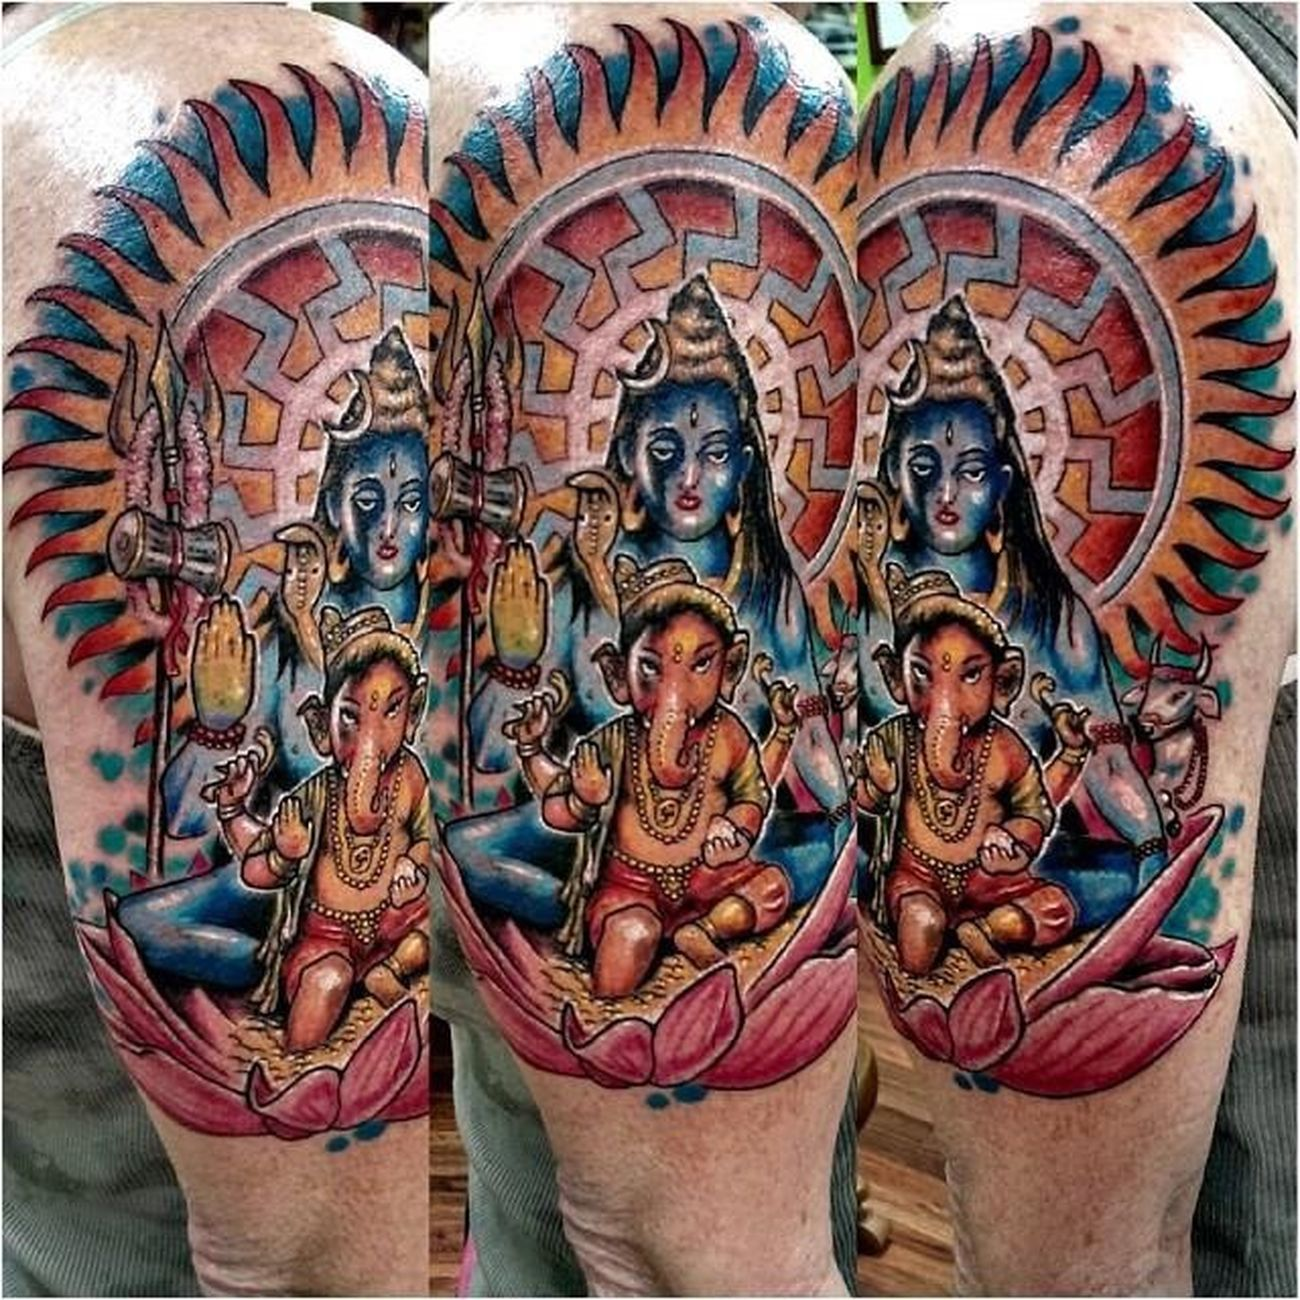 Check This Out Fullcustomtattoo Tattoo JacksonvilleFL